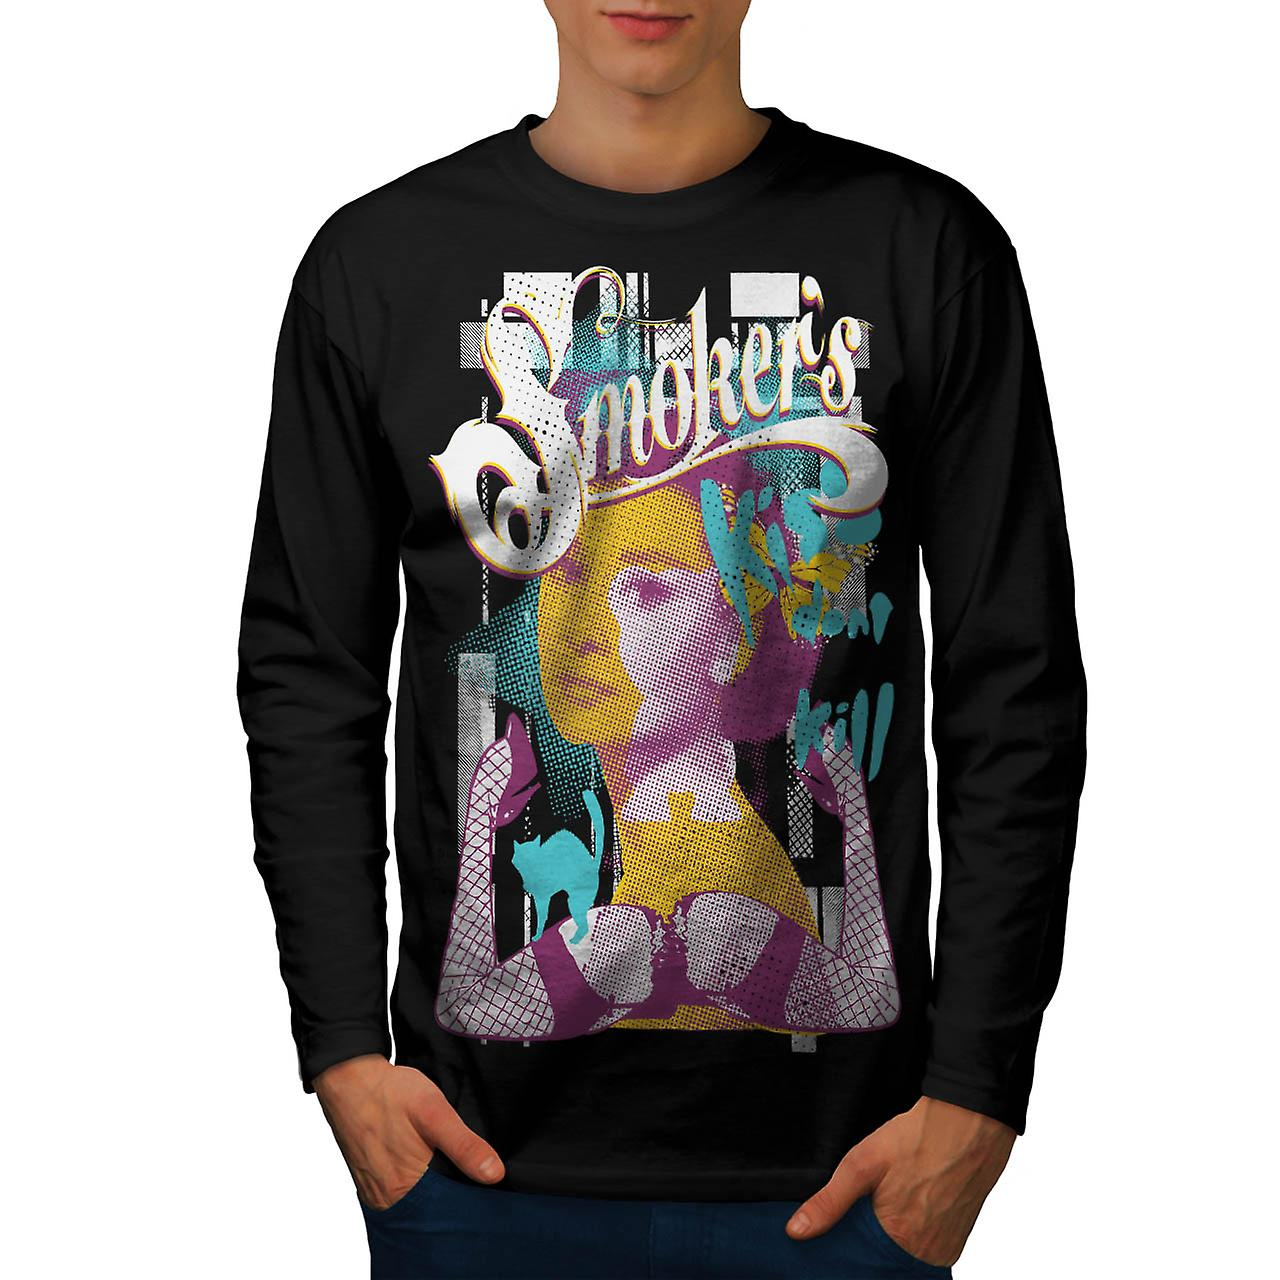 Smoker Kiss Dont Kill Audrey Leg Men Black Long Sleeve T-shirt | Wellcoda